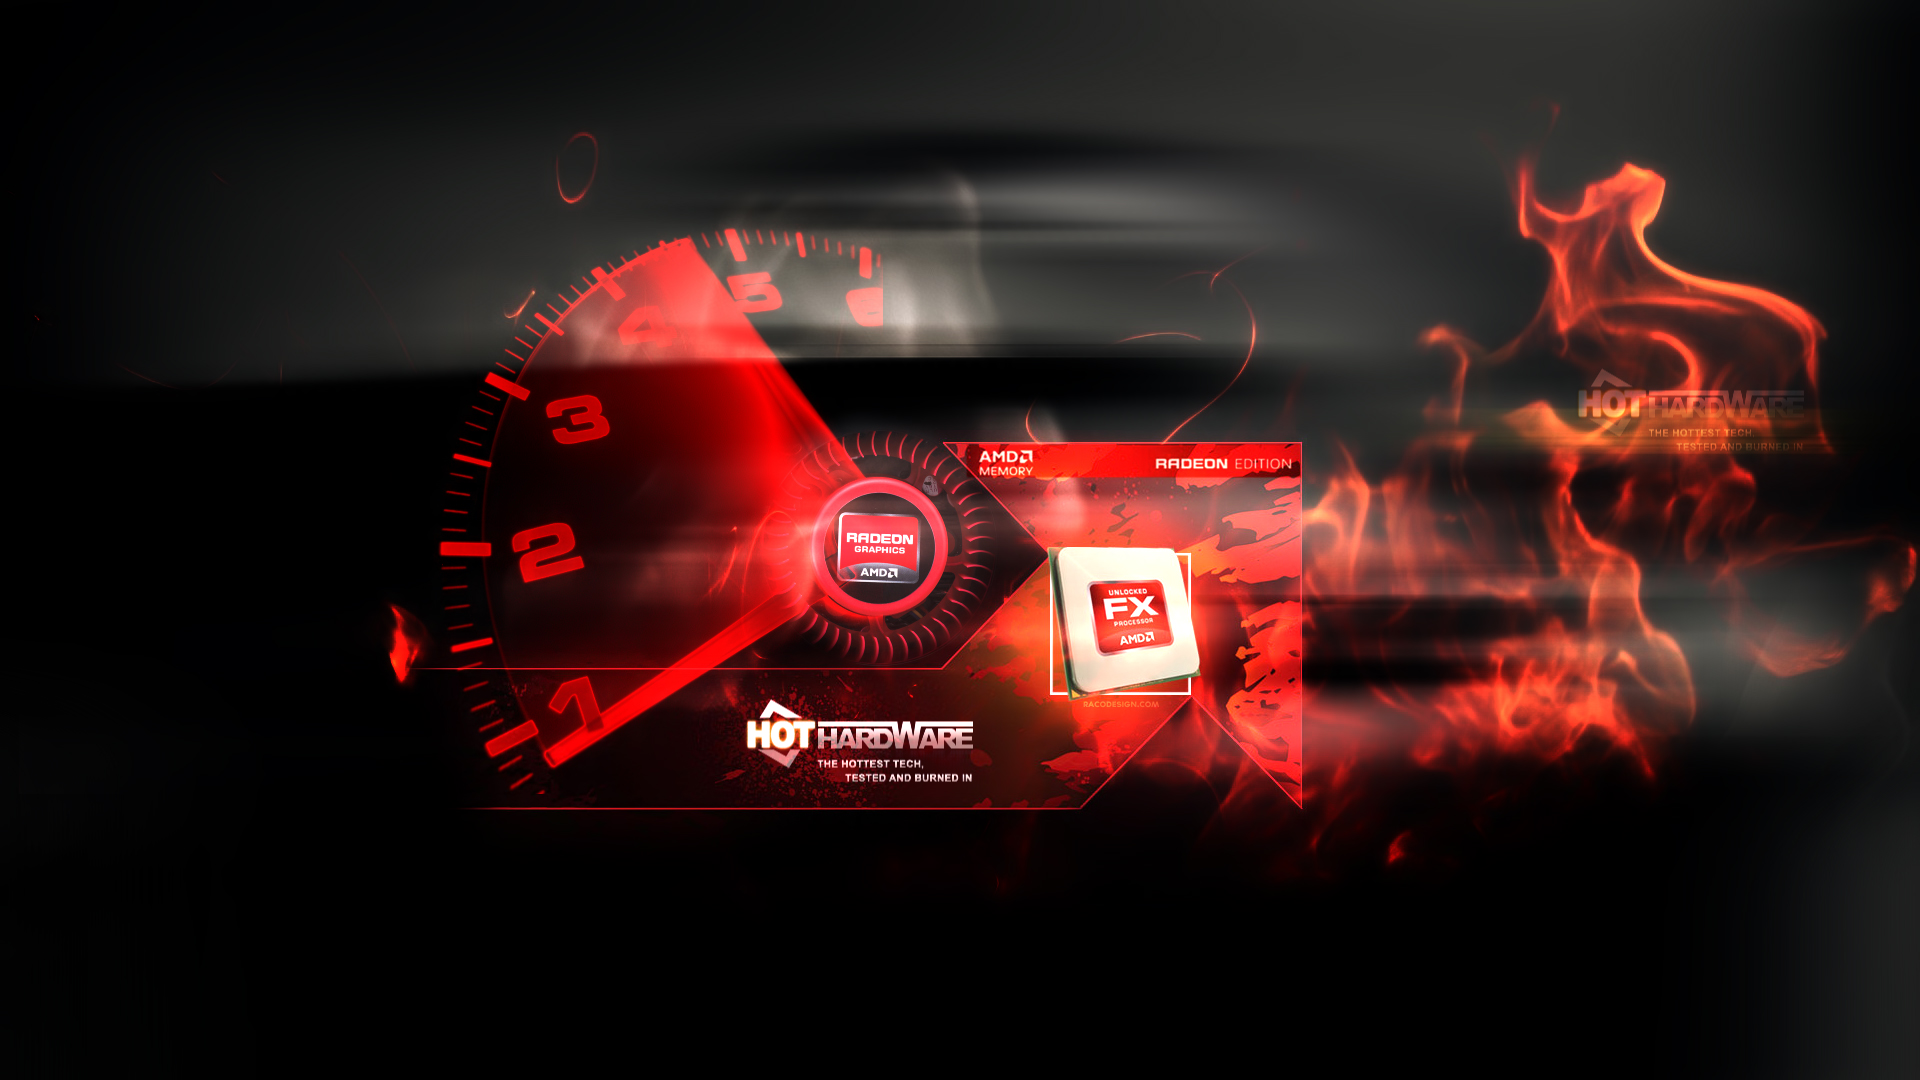 Amd Launches Fx 4350 6350 Piledriver Cpus Wallpaper 1920x1080 Technology Picture Hd